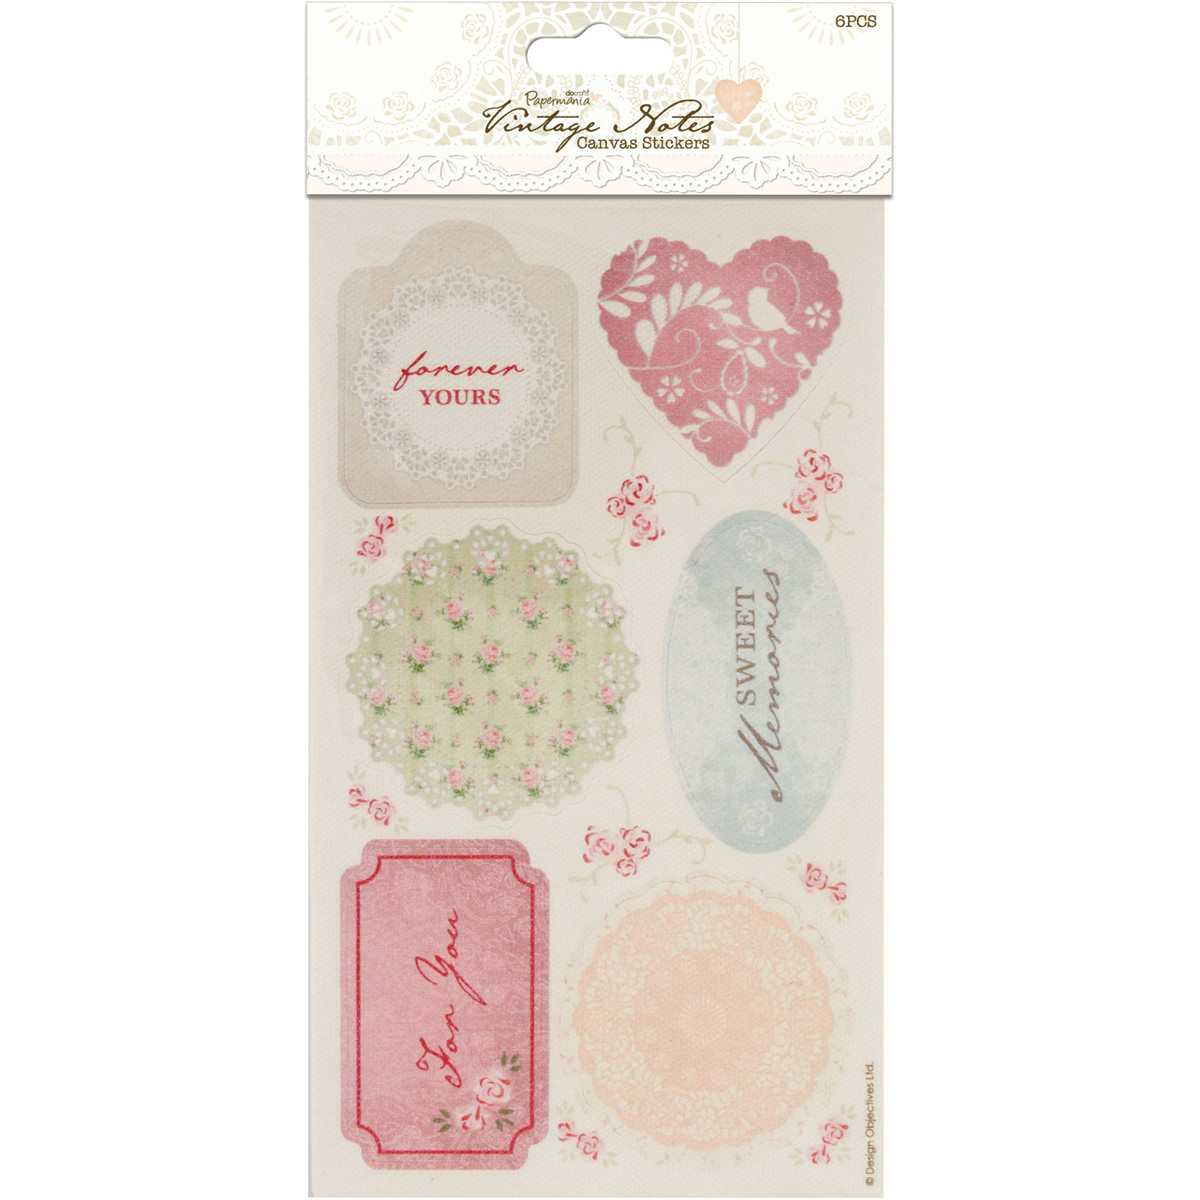 Docrafts Papermania Vintage Notes Canvas Stickers